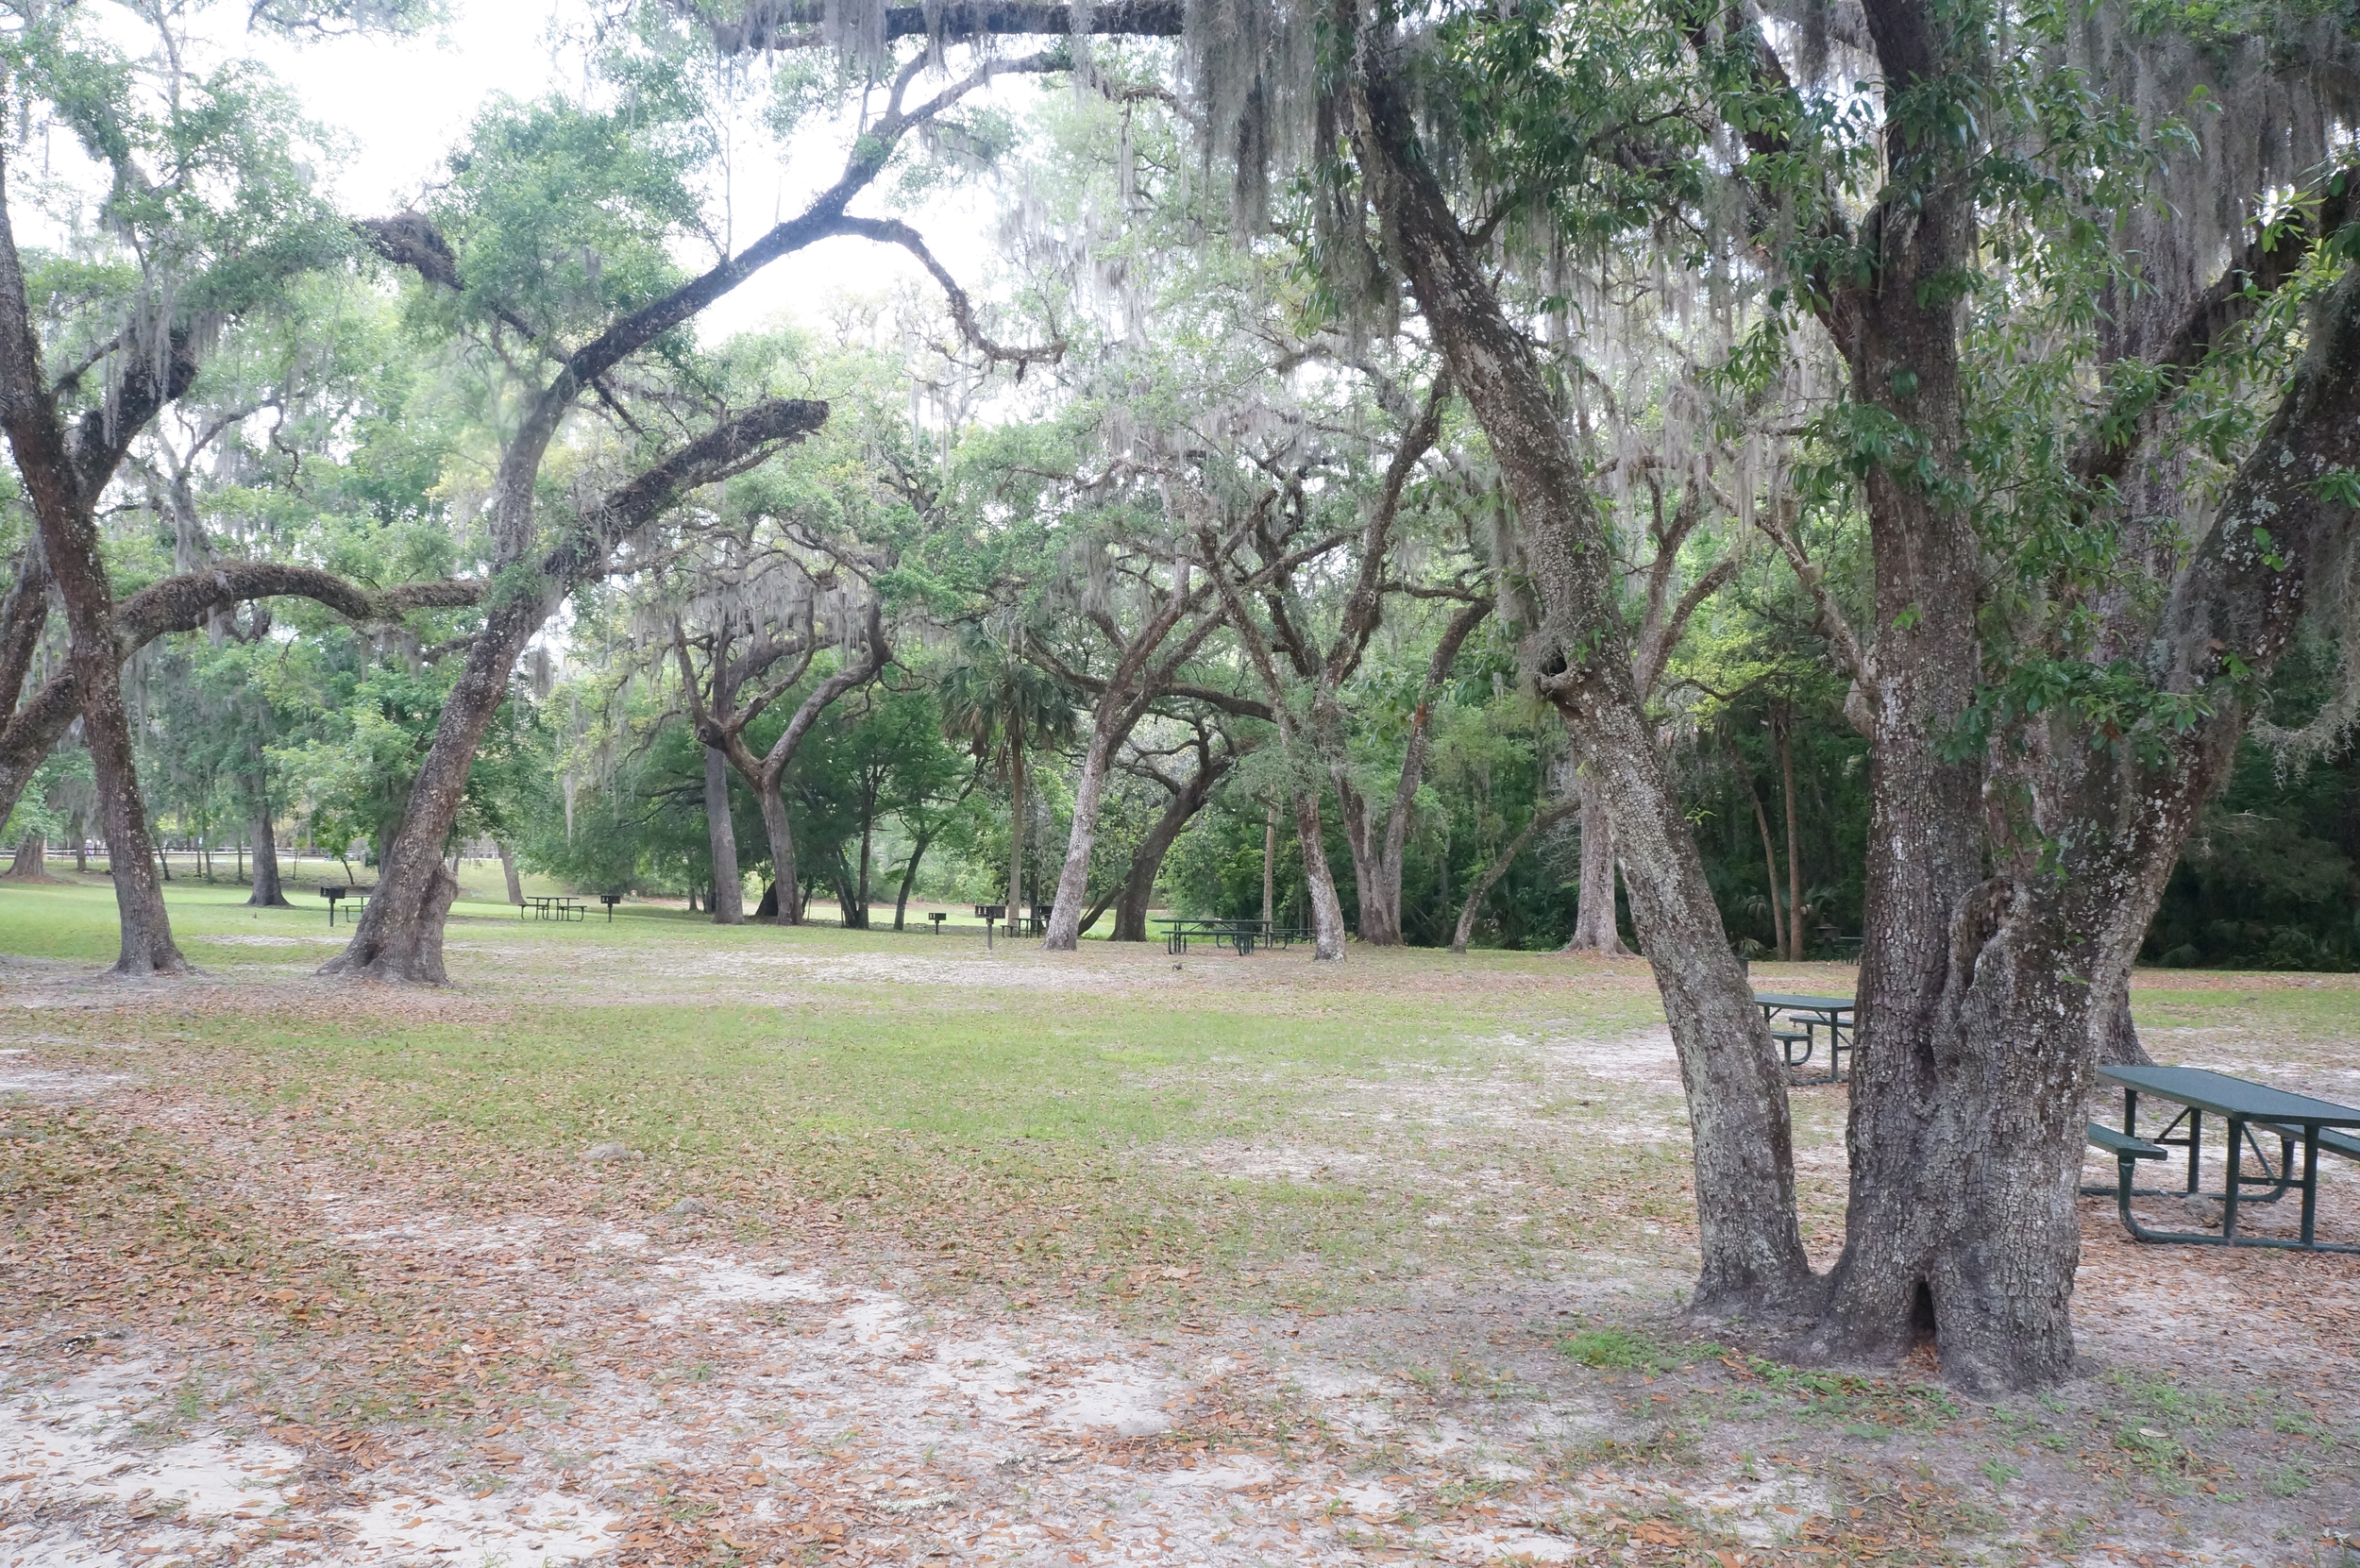 Picnic area near the springs